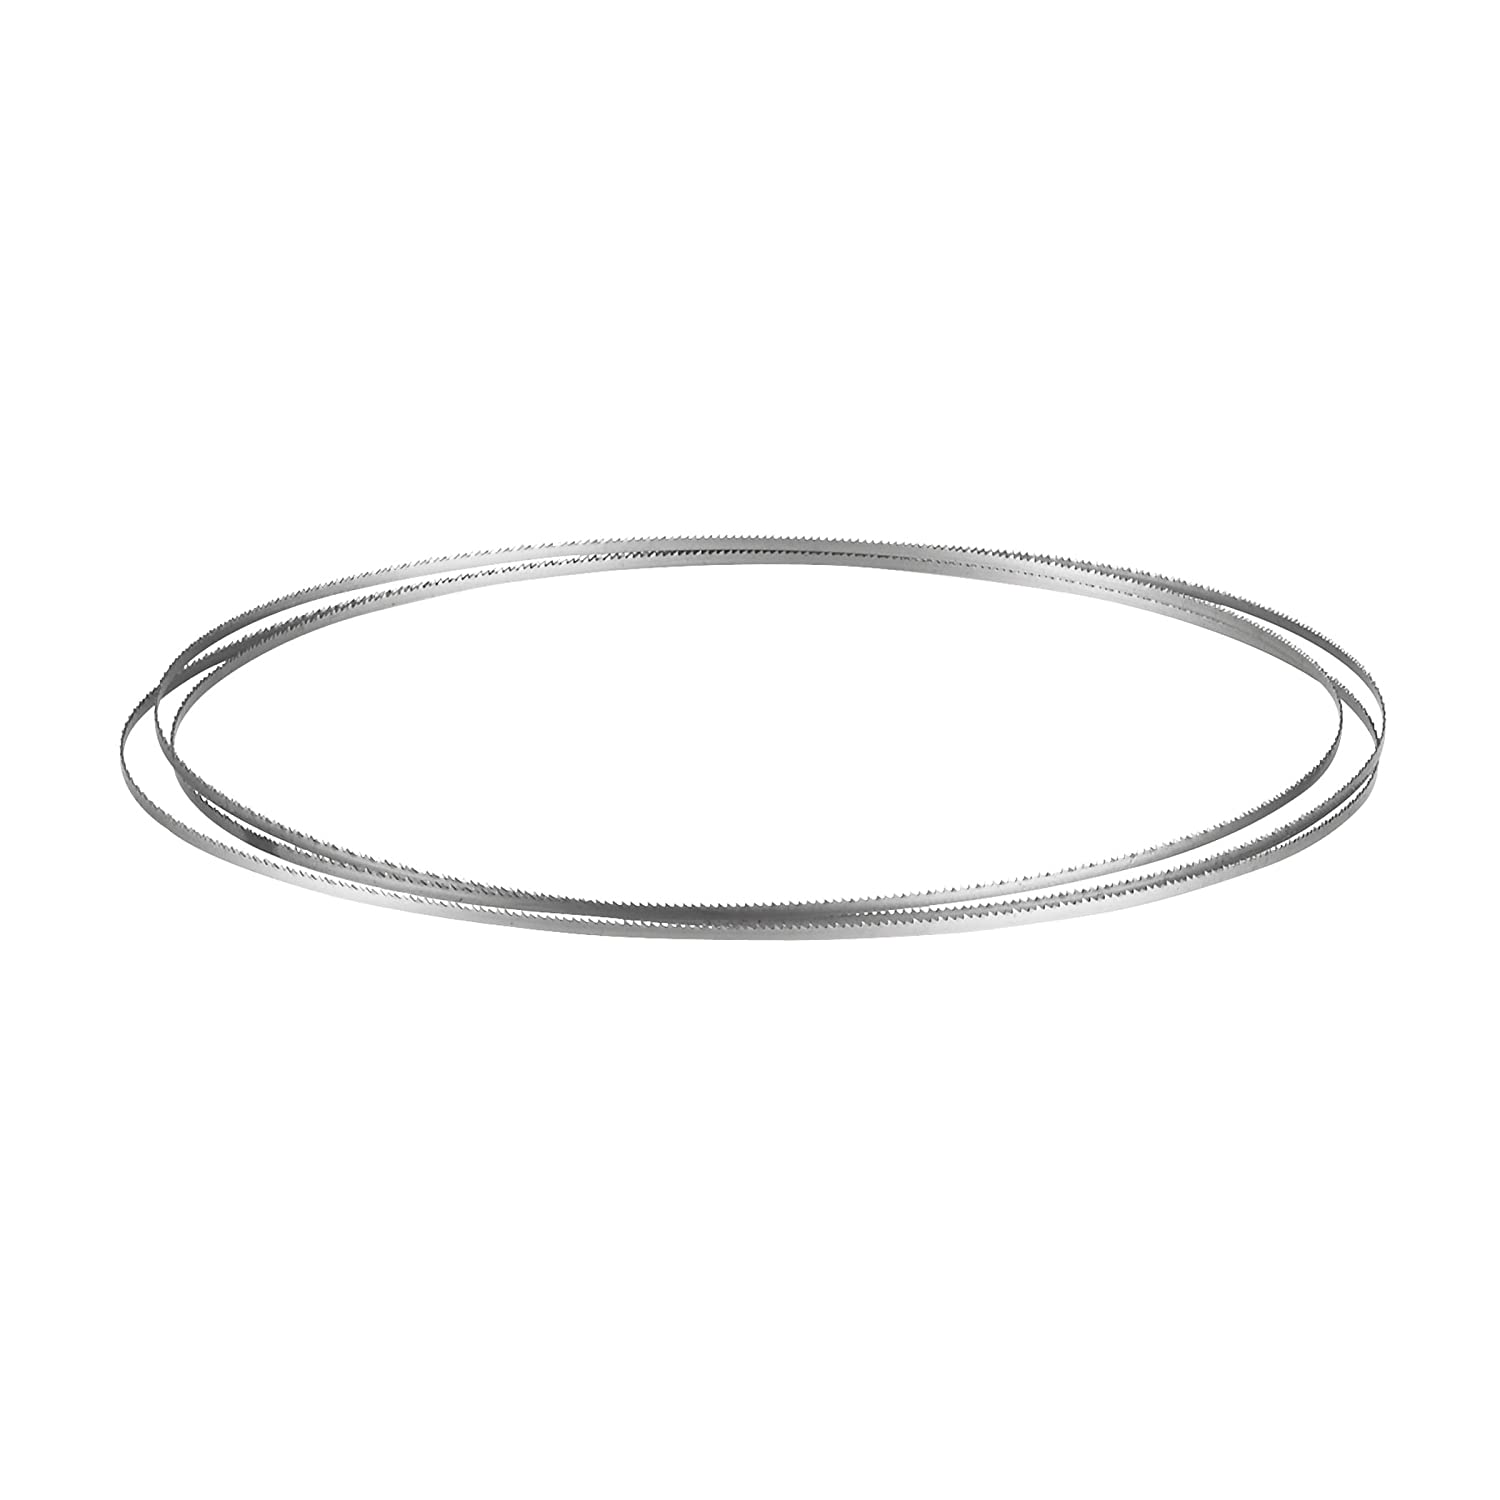 Bosch BS9312-15S 93-1/2-Inch by 1/8-Inch by 15TPI Wood Bandsaw Blade